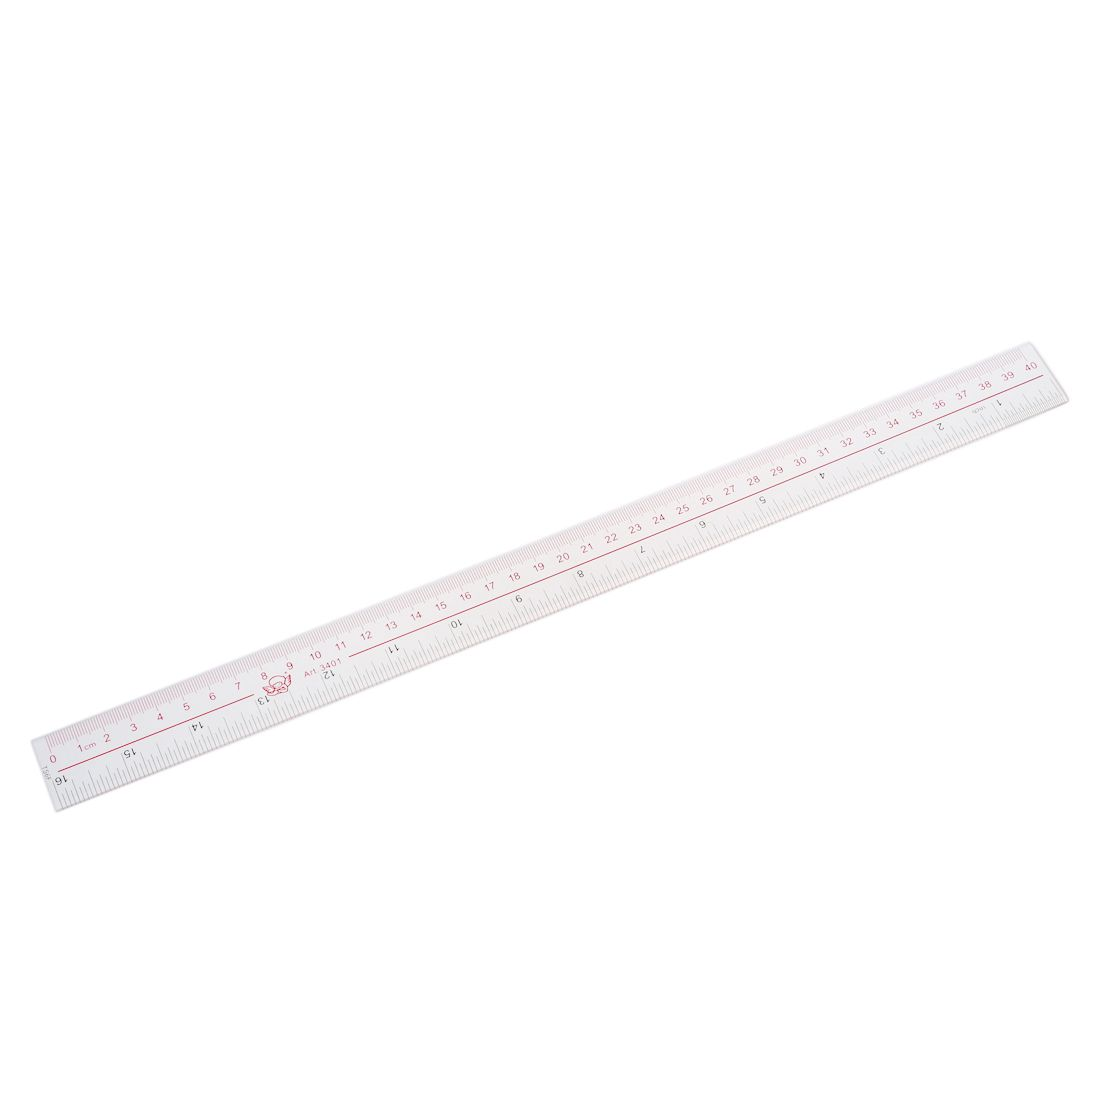 New 40cm 16 Inches Length Measure Clear Plastic Straight